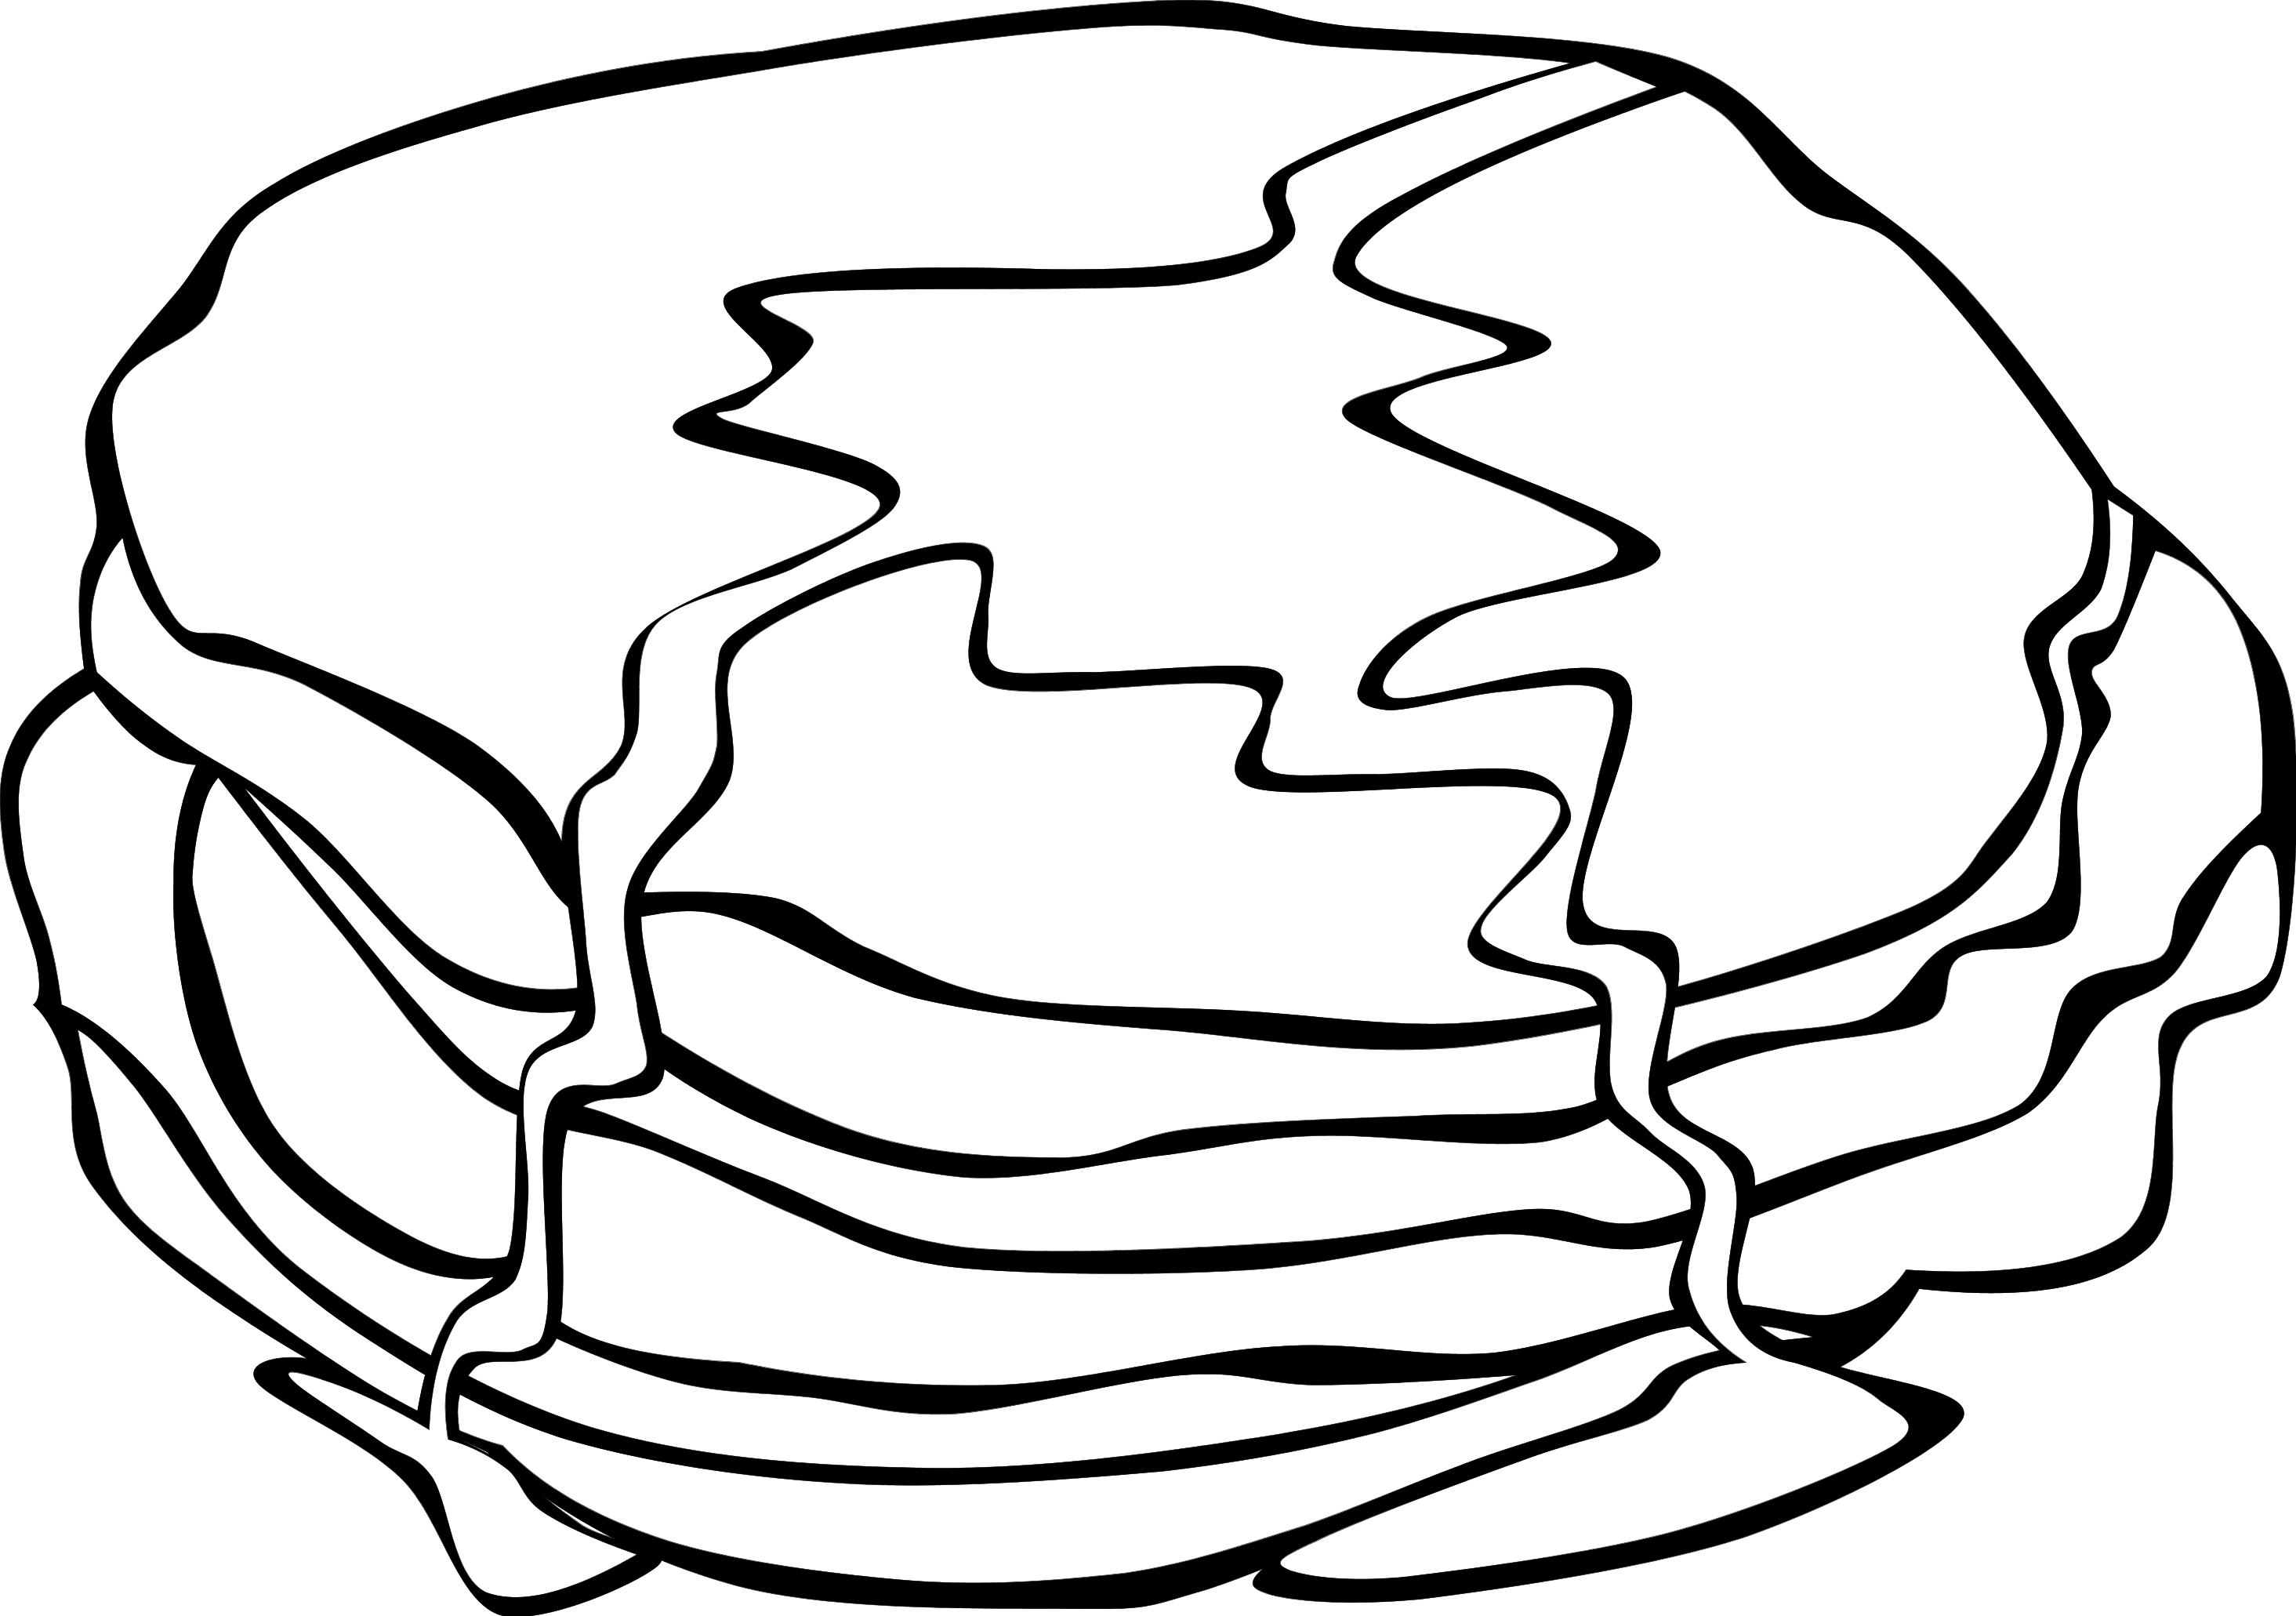 svg royalty free Pancakes clipart black and white.  collection of high